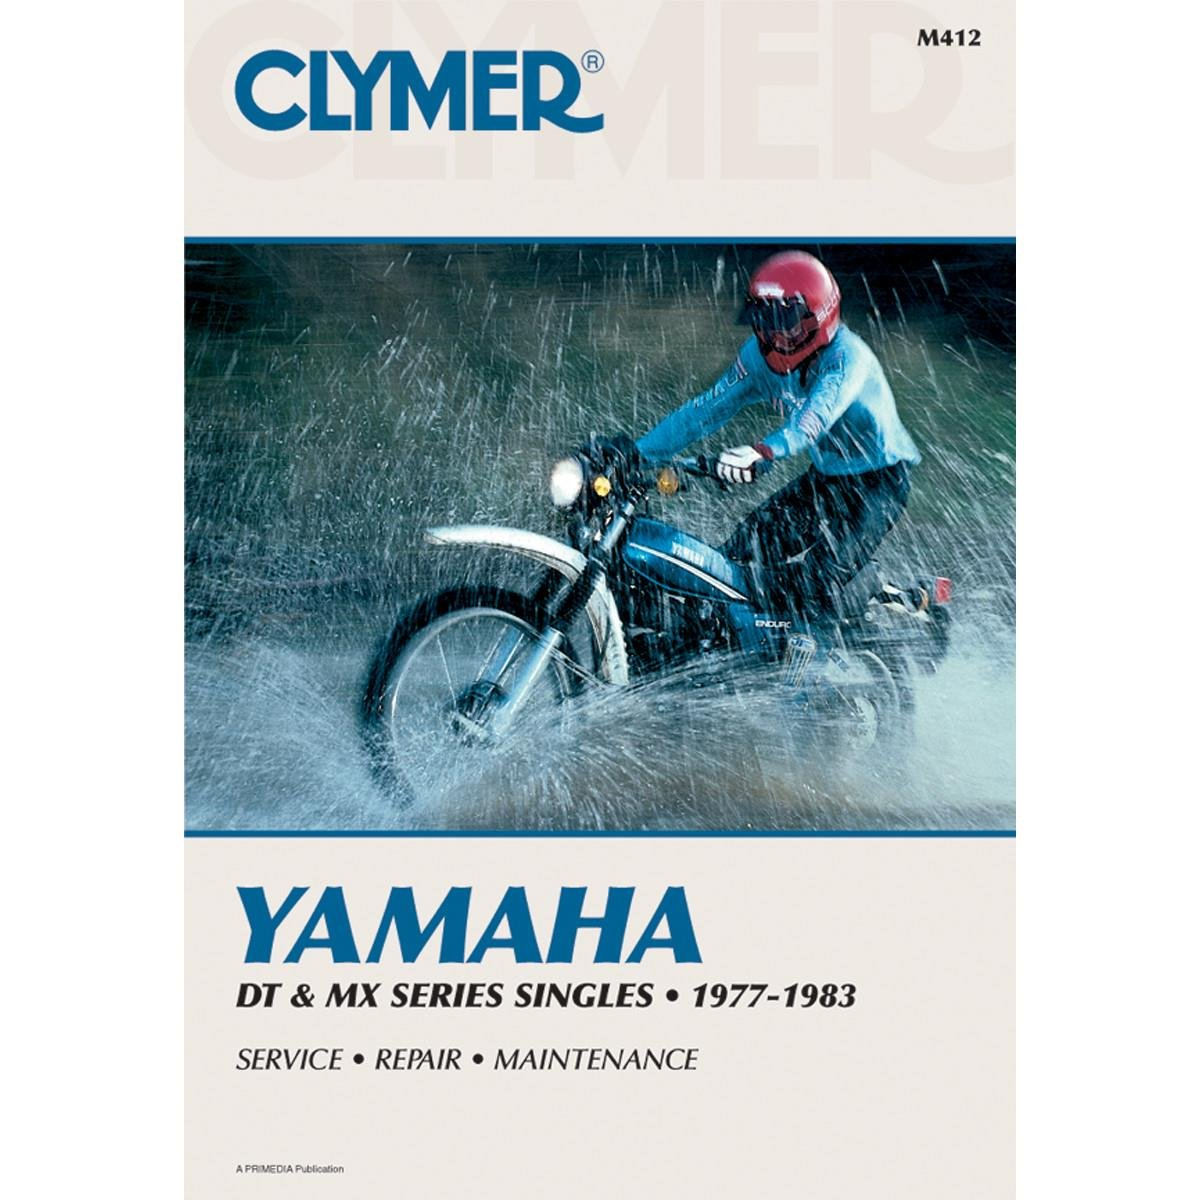 Clymer Repair Manual For Yamaha Dt Mx100 400 77 83 175 Wiring Diagram Electronics